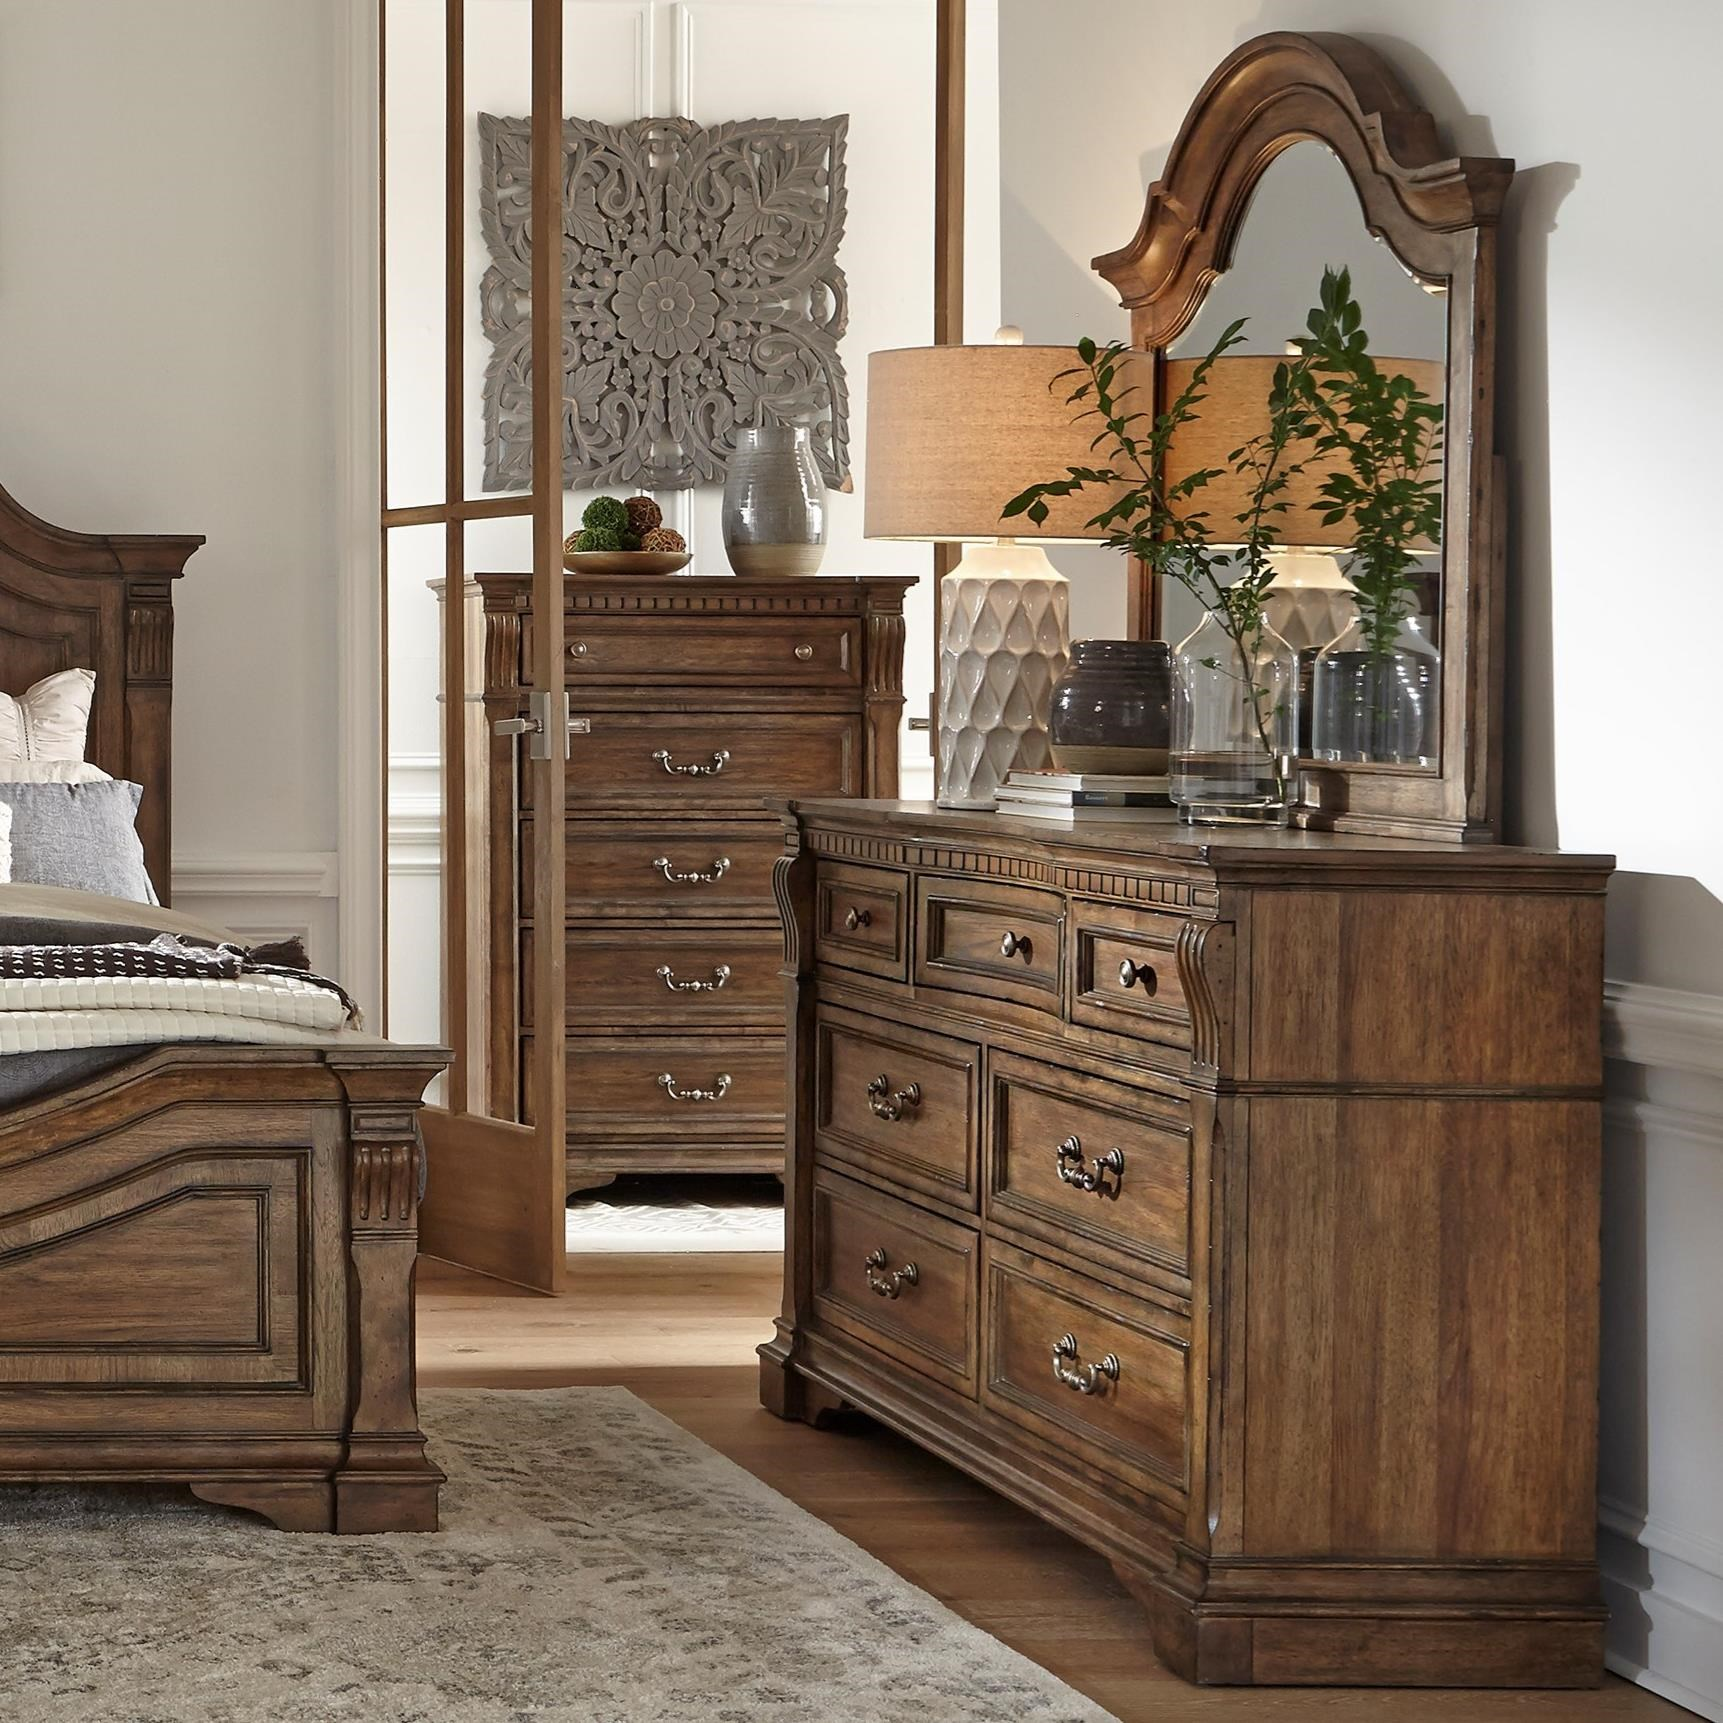 7-Drawer Dresser and Arched Mirror Set